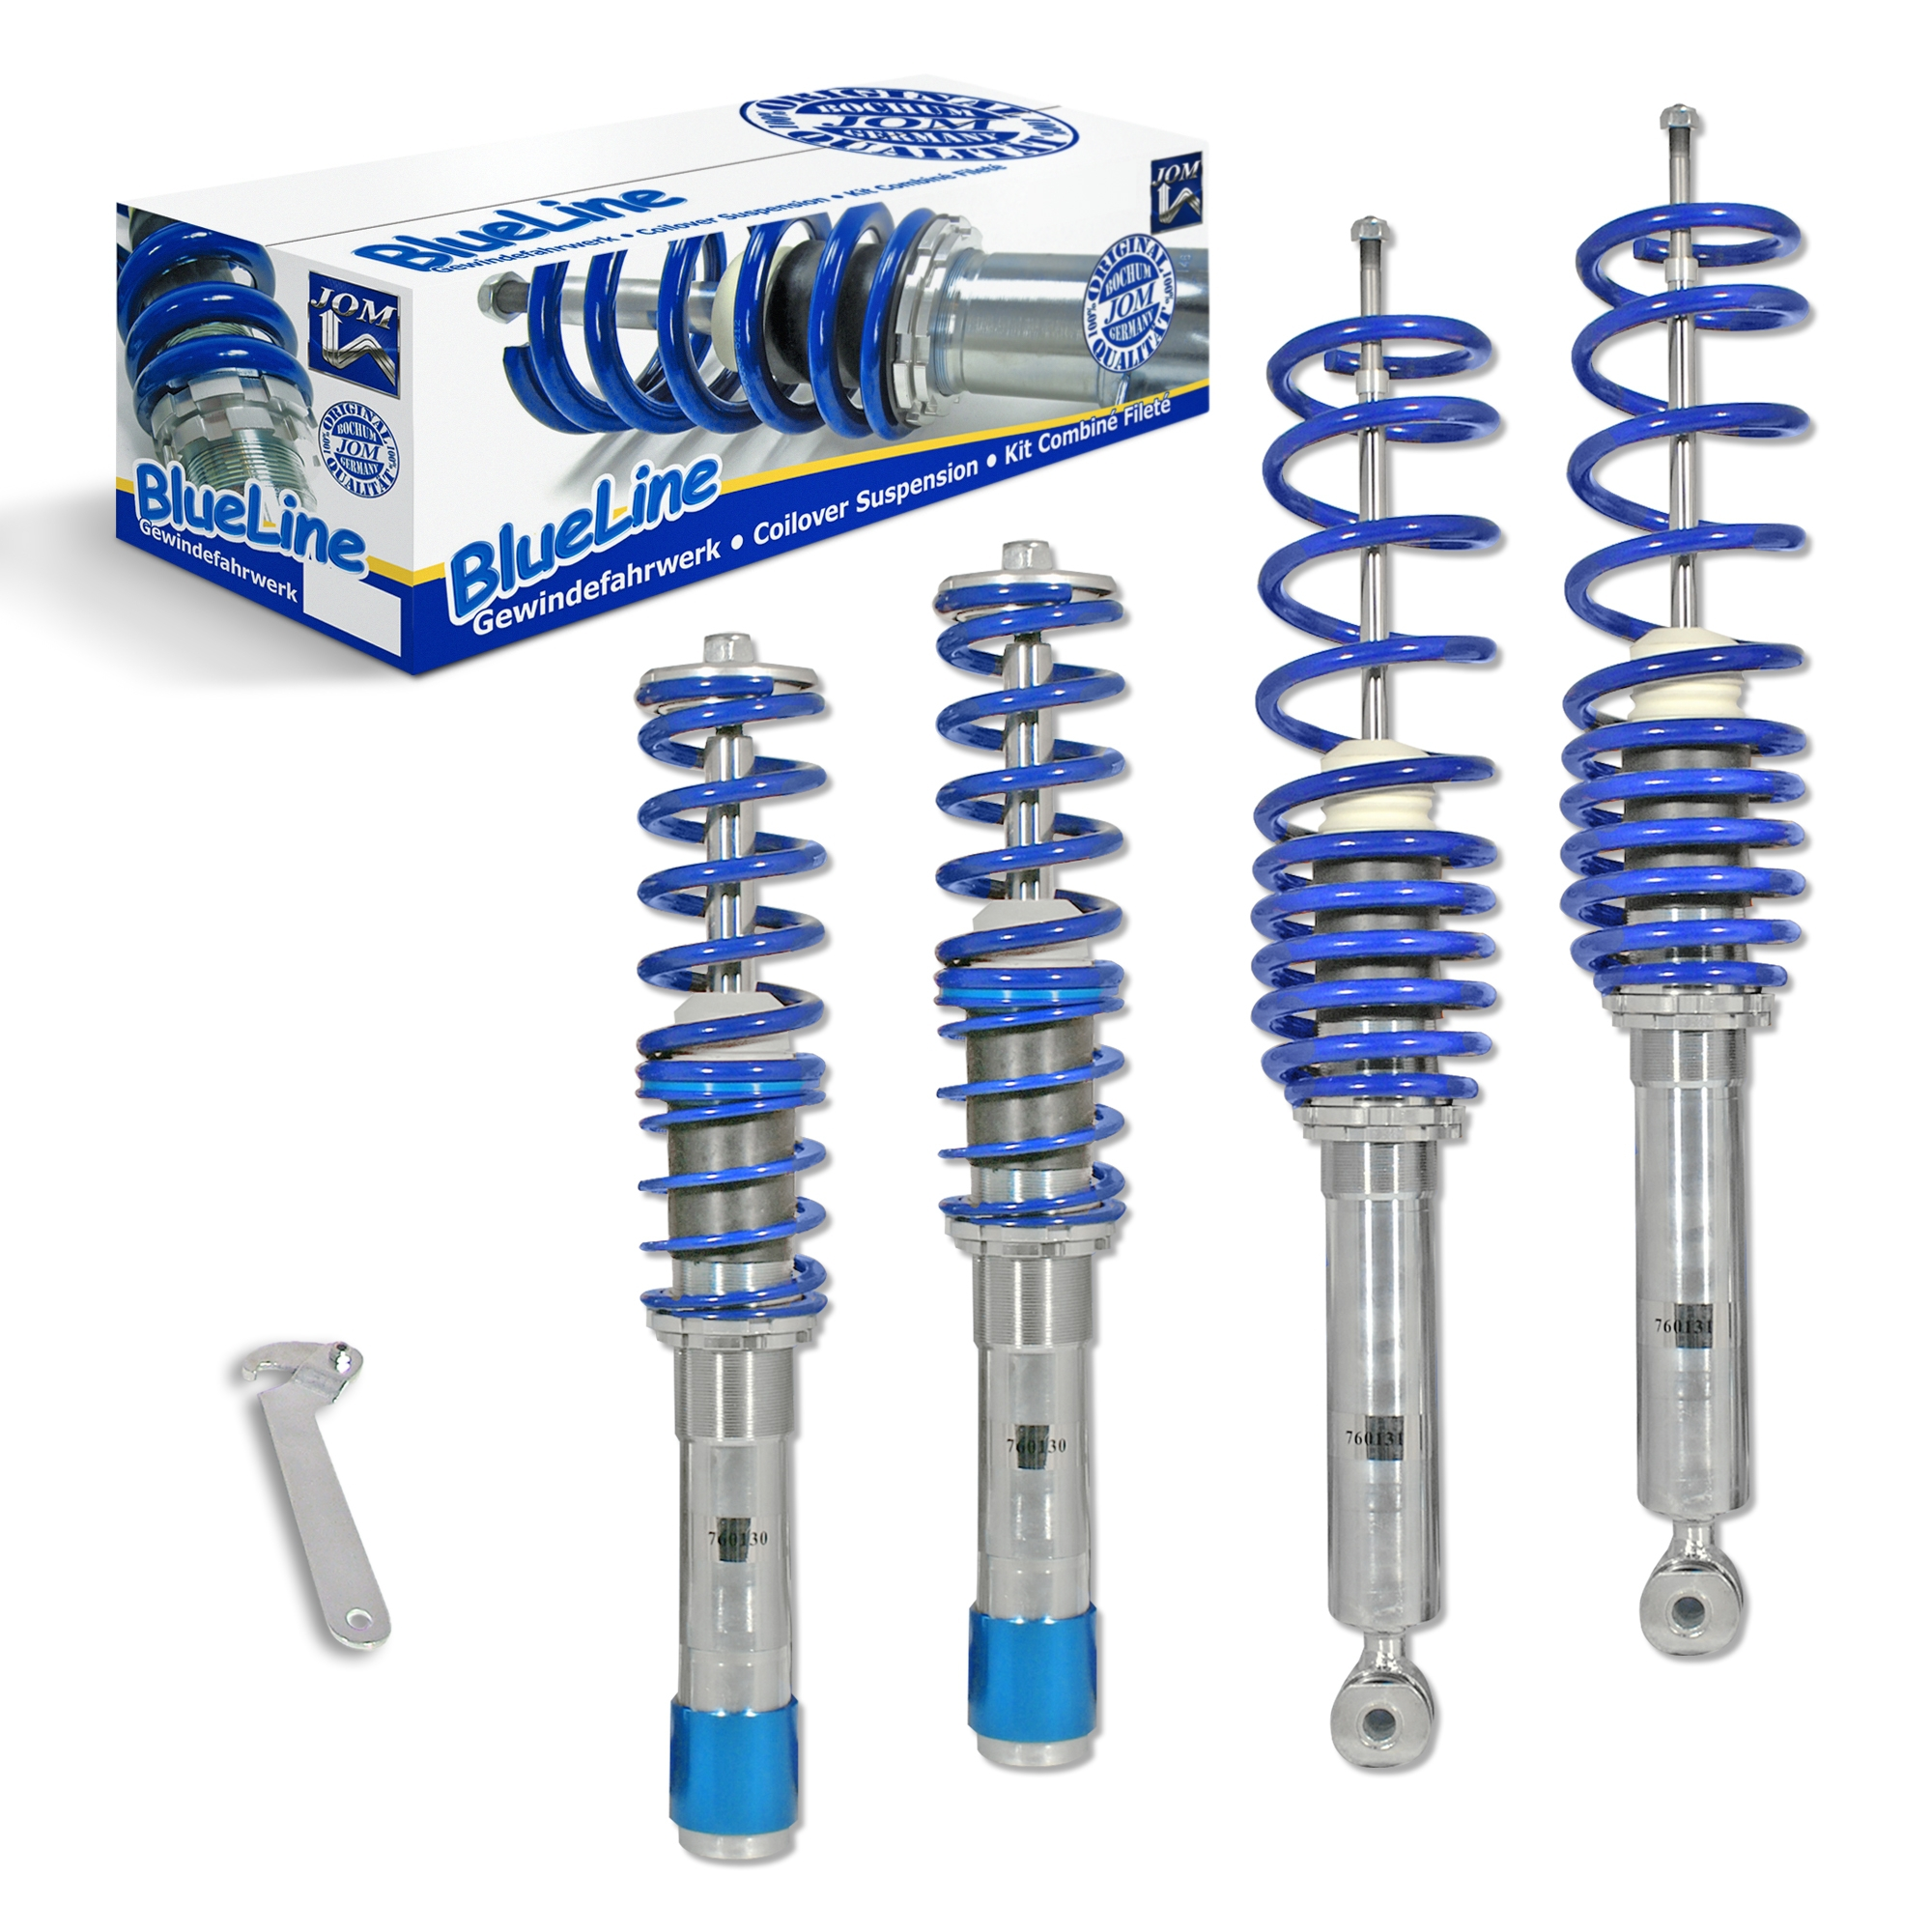 Blueline Coilover Kit Suitable For Bmw E39 520i 523i 525i 528i 530i 520d 525d Td Tds And 530d Year 1995 2003 Except Touring